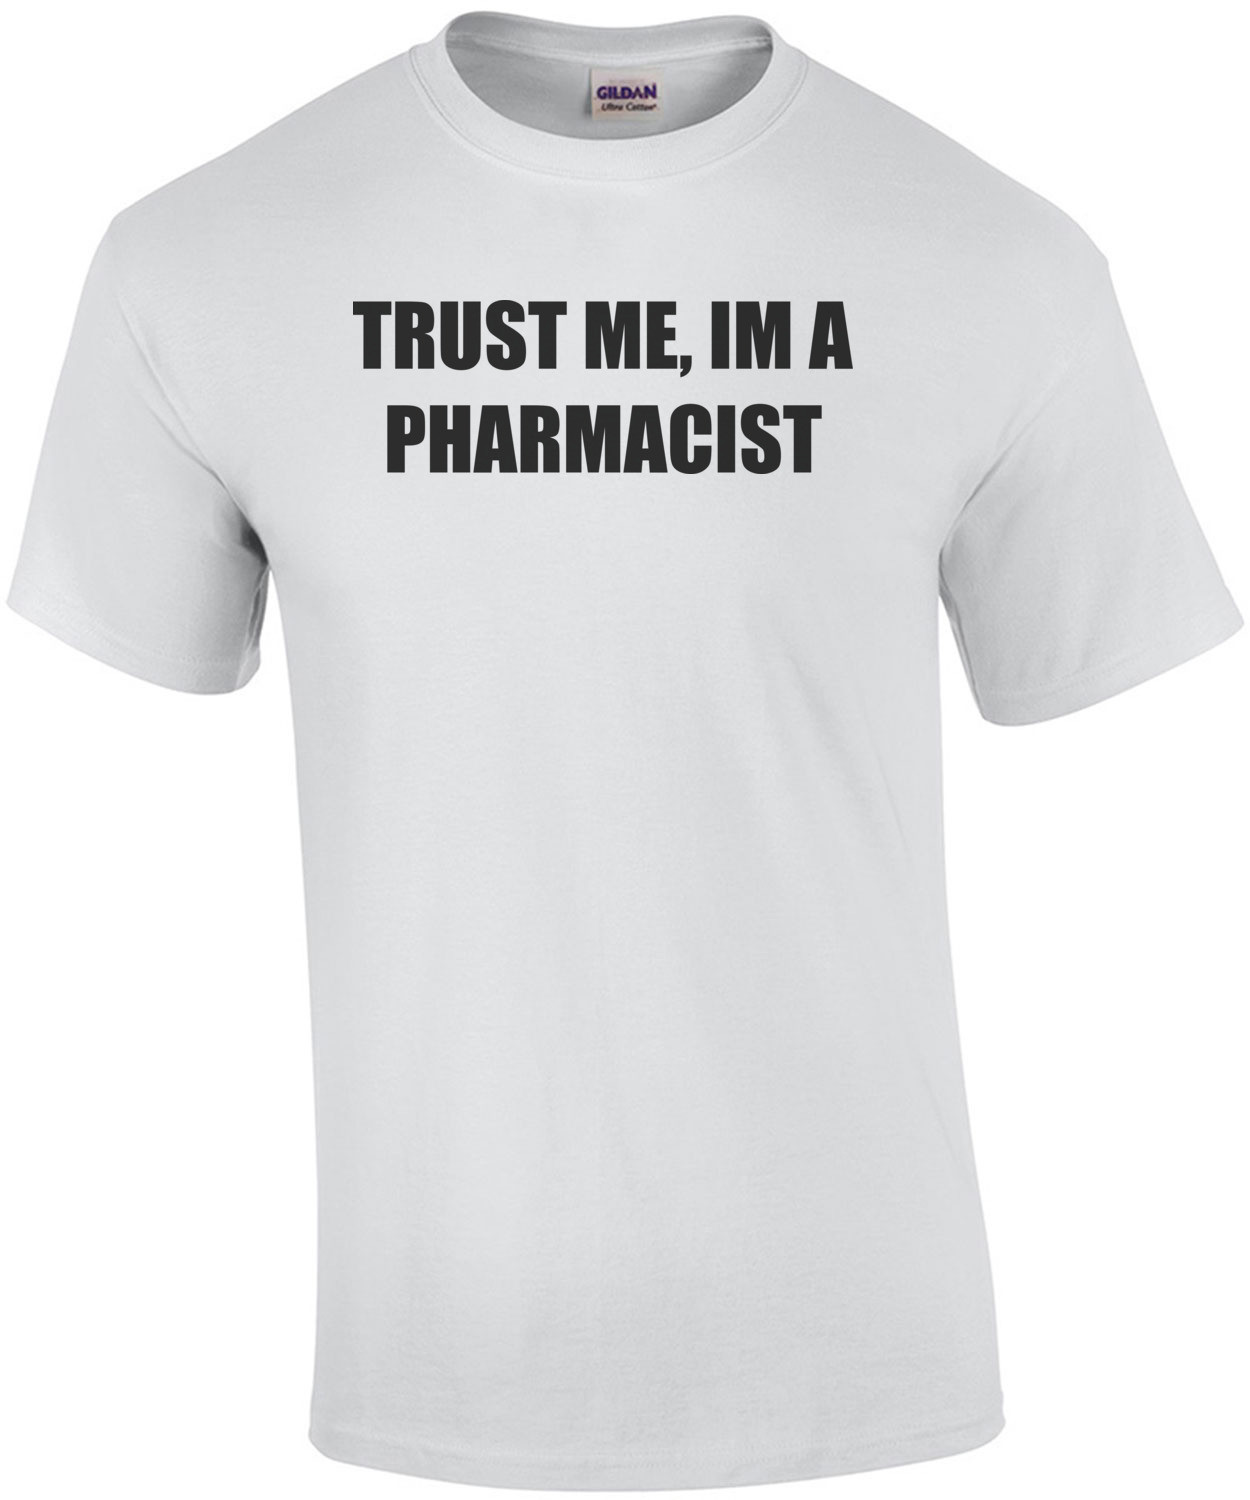 TRUST ME, IM A PHARMACIST Shirt